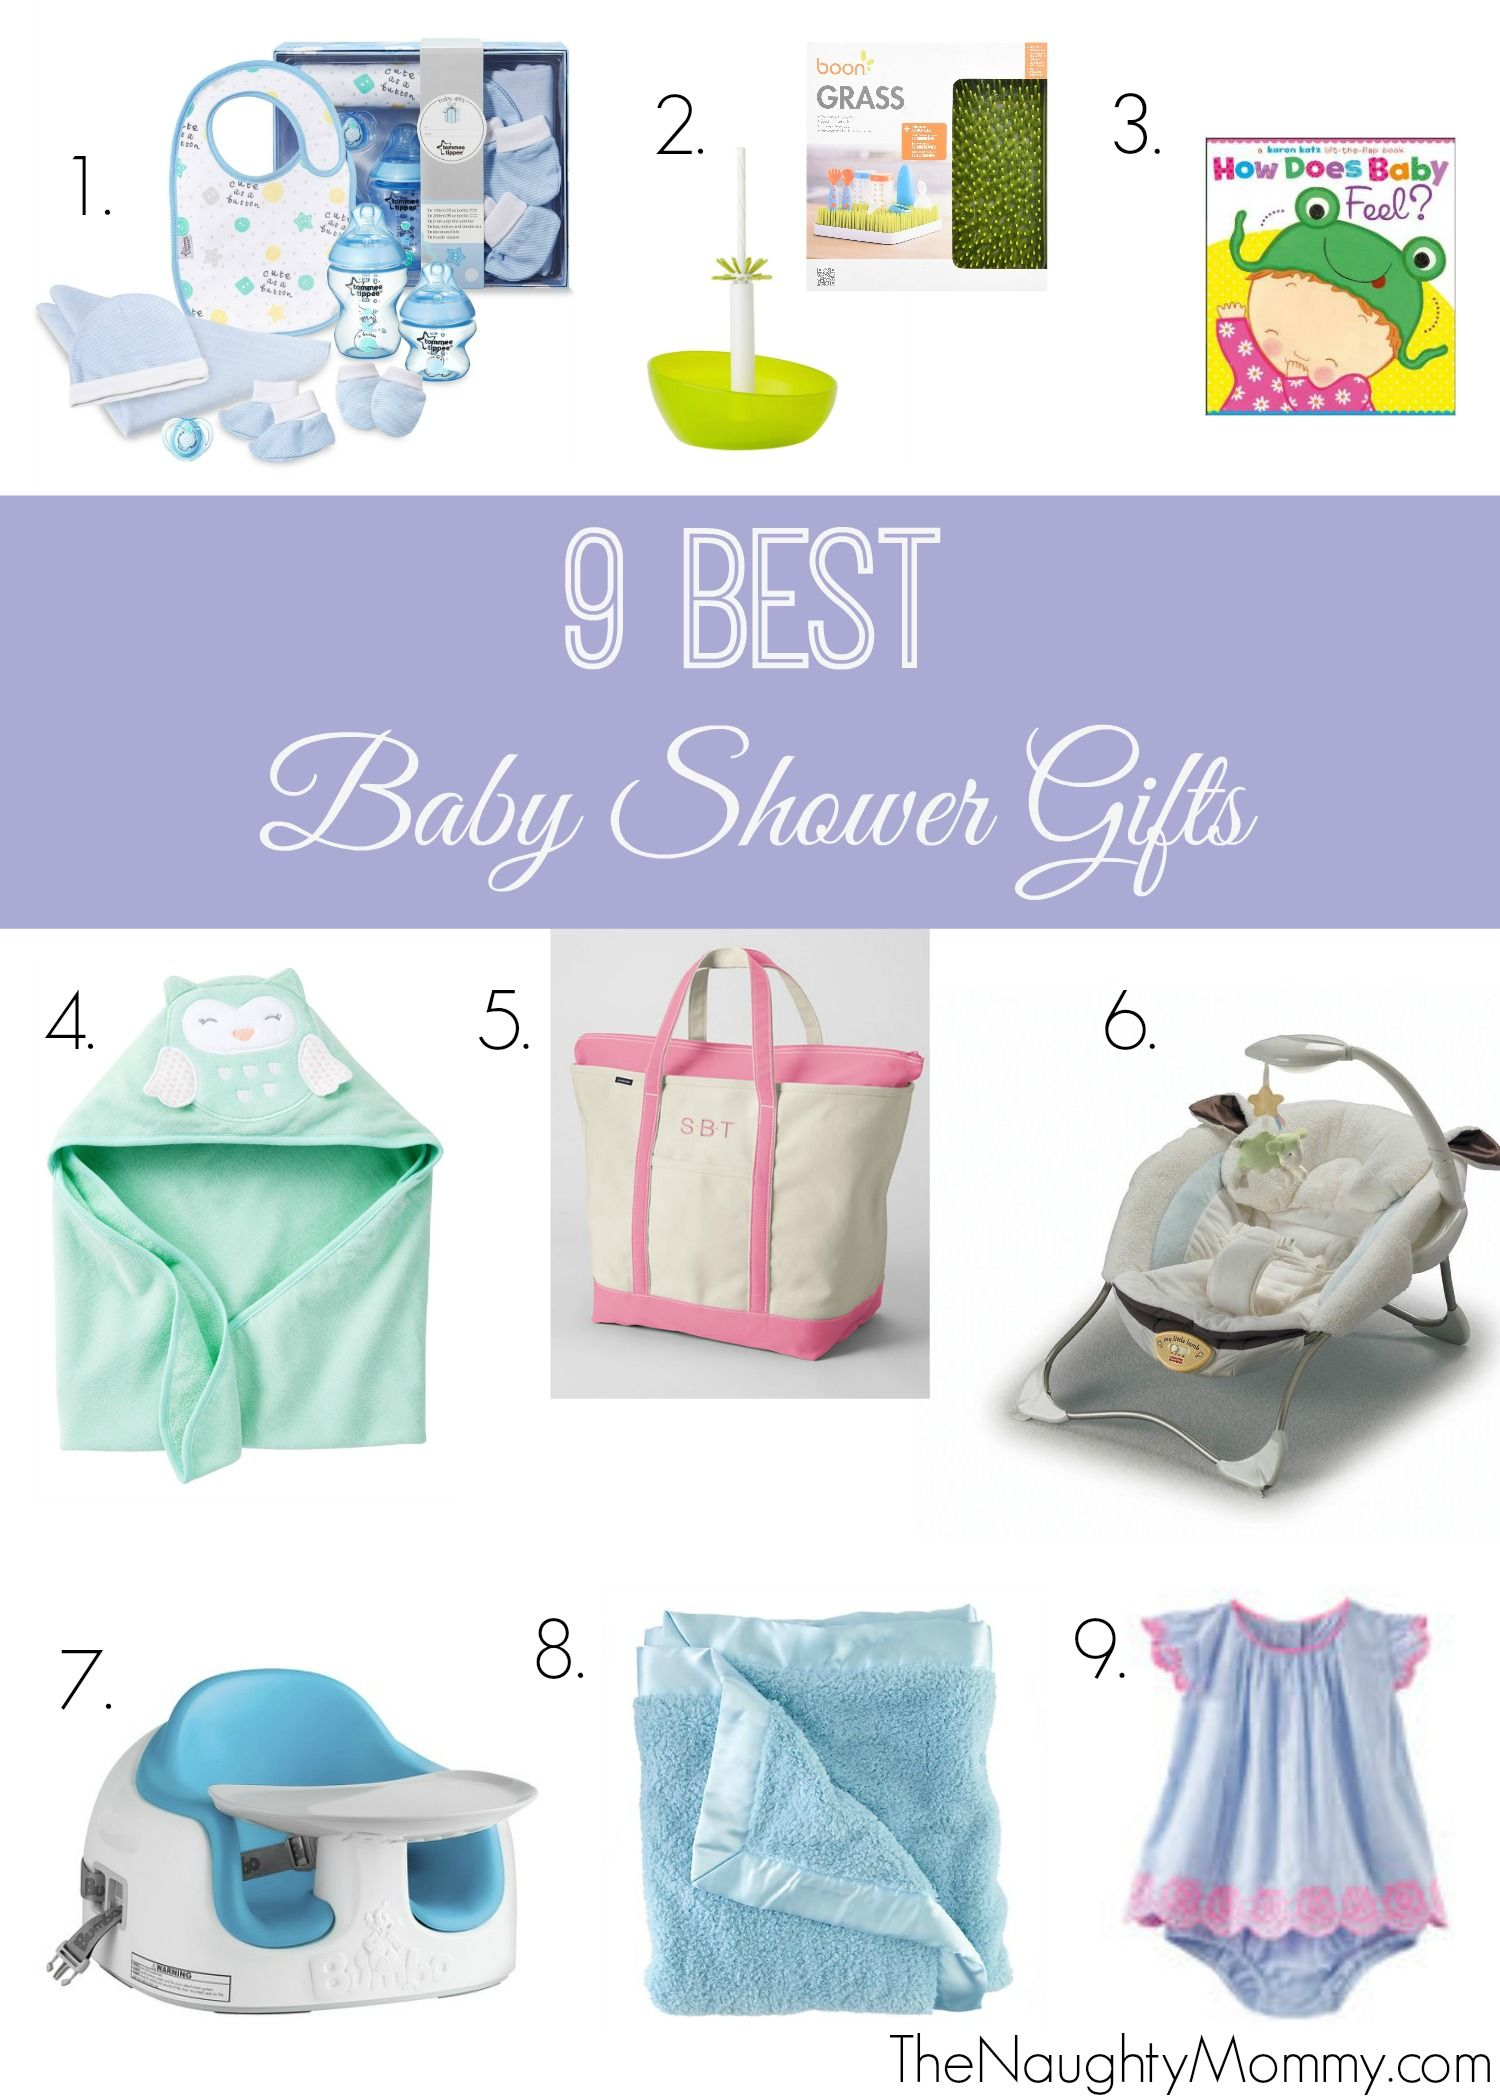 Have A Baby Shower Coming Up? Here My Nine Favorite Baby Shower Gifts That I